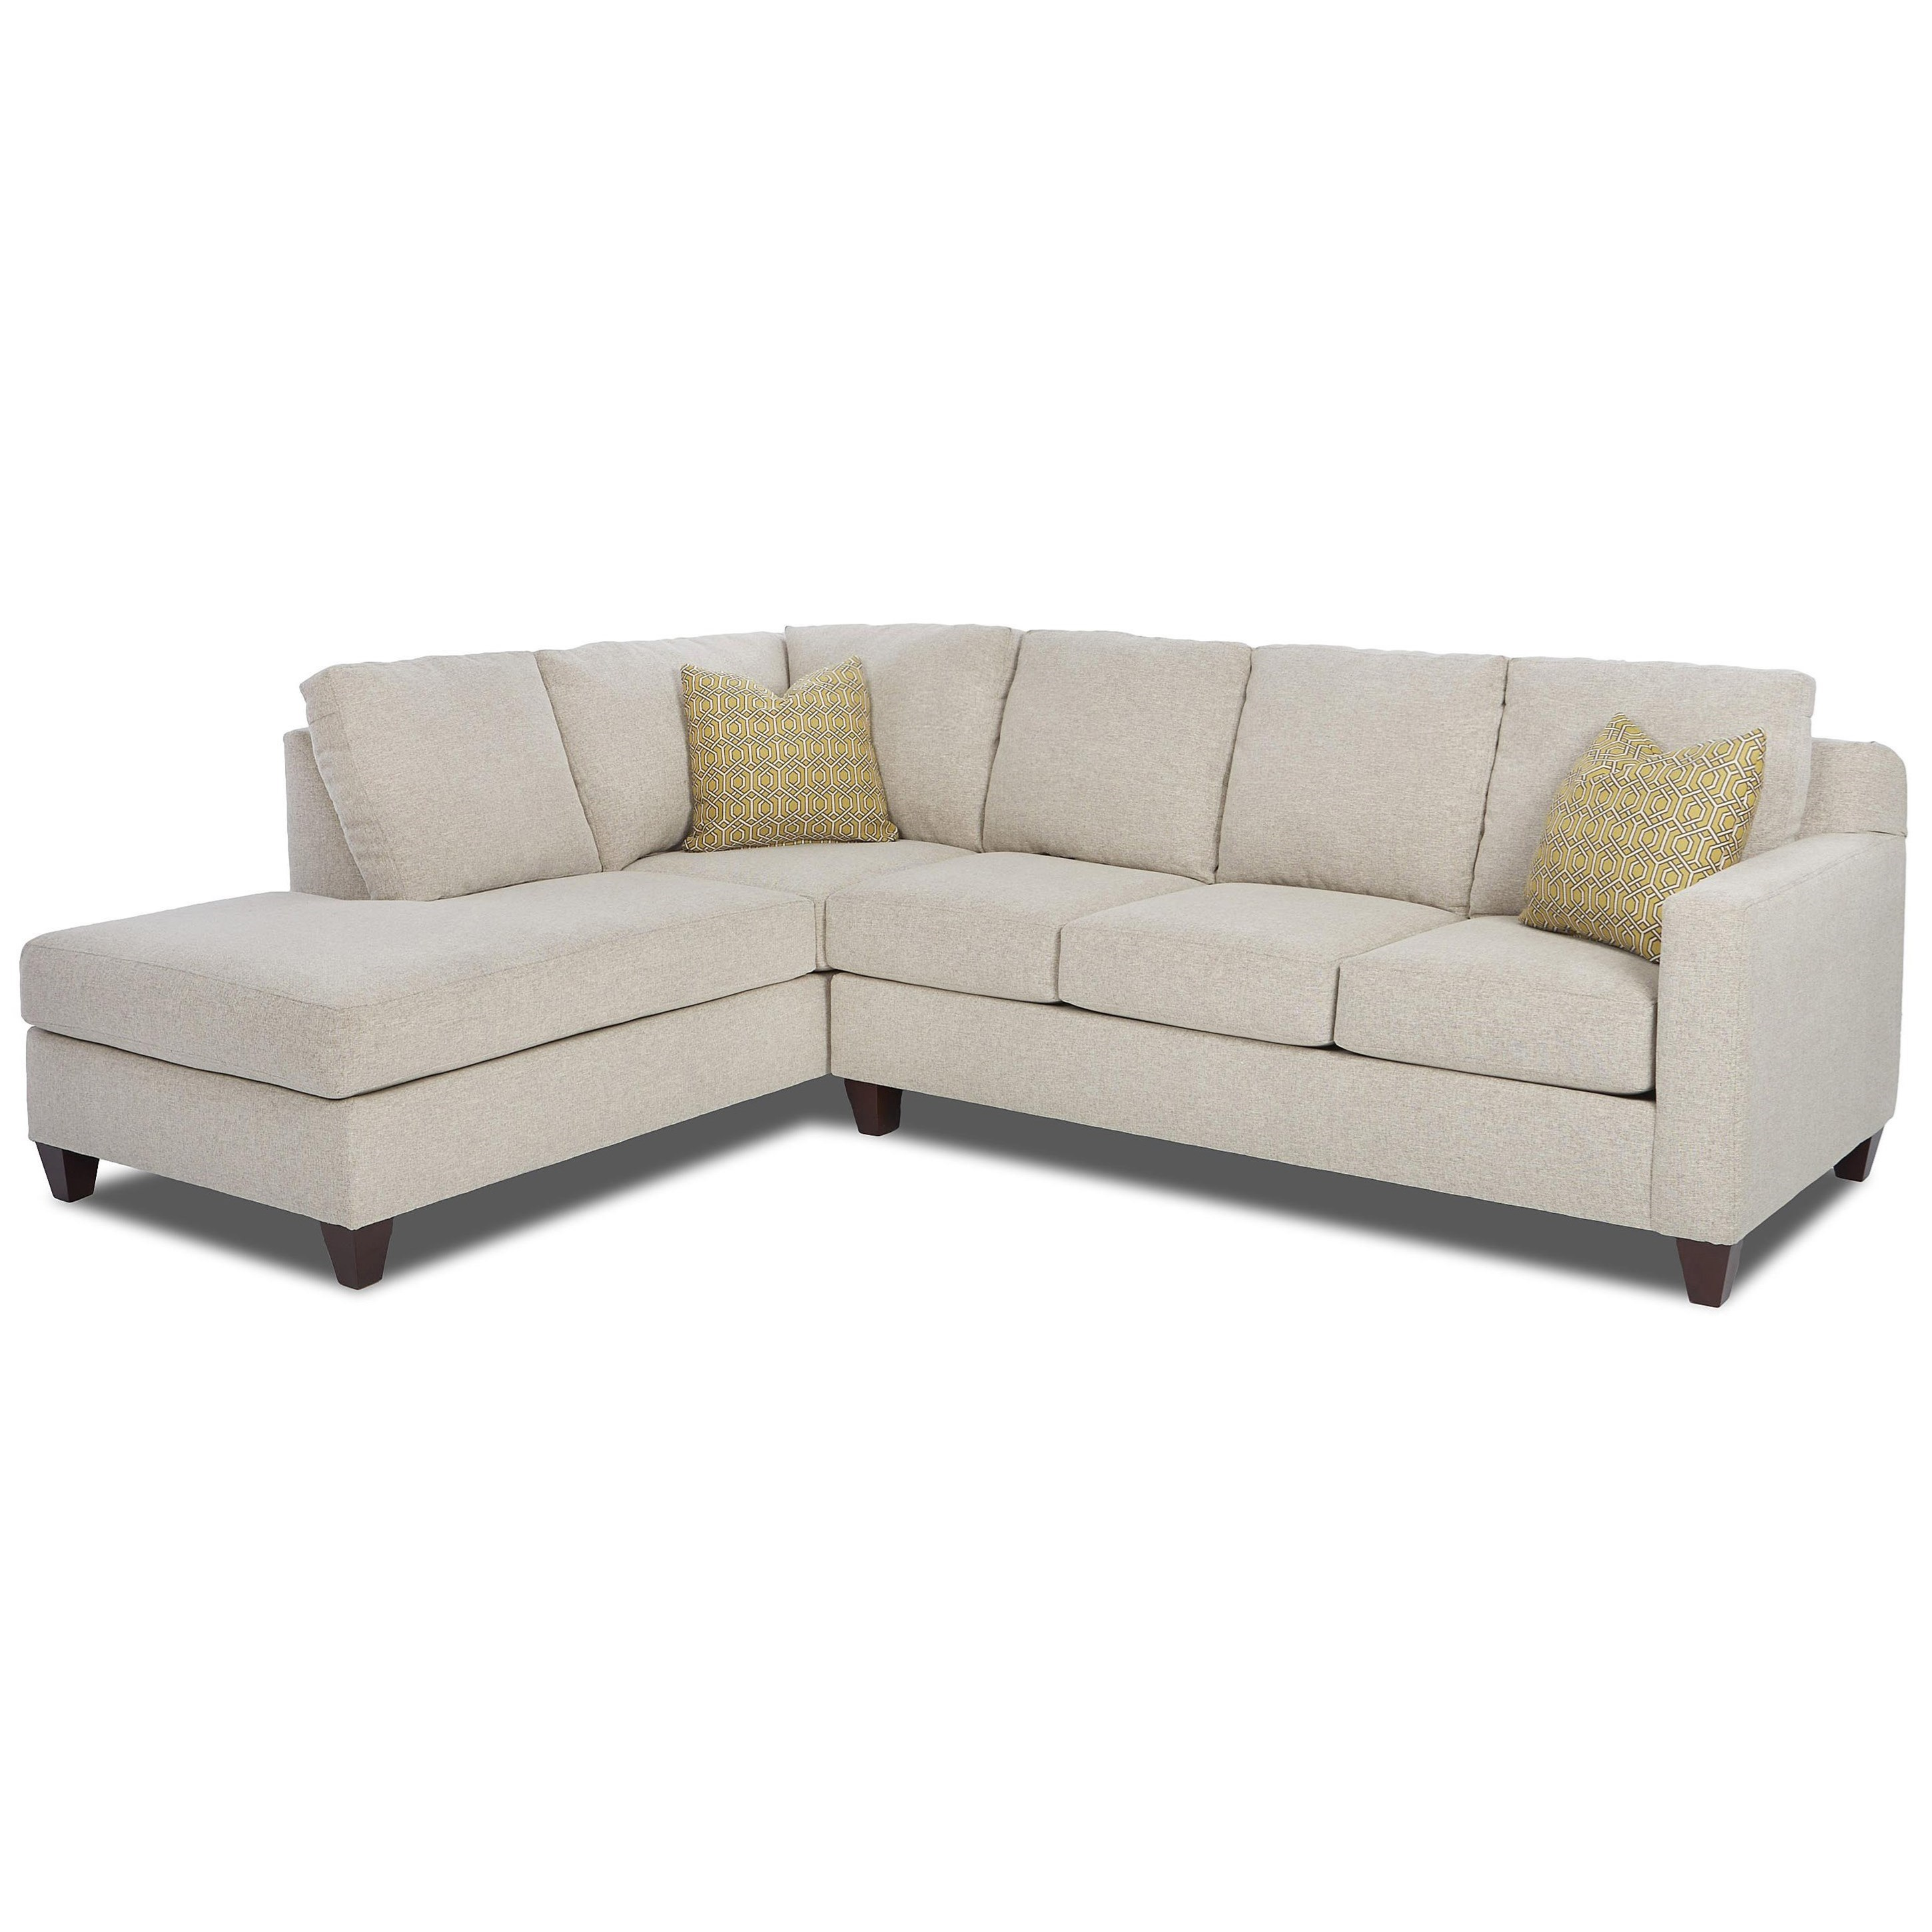 Bosco Sectional by Klaussner at Lapeer Furniture & Mattress Center